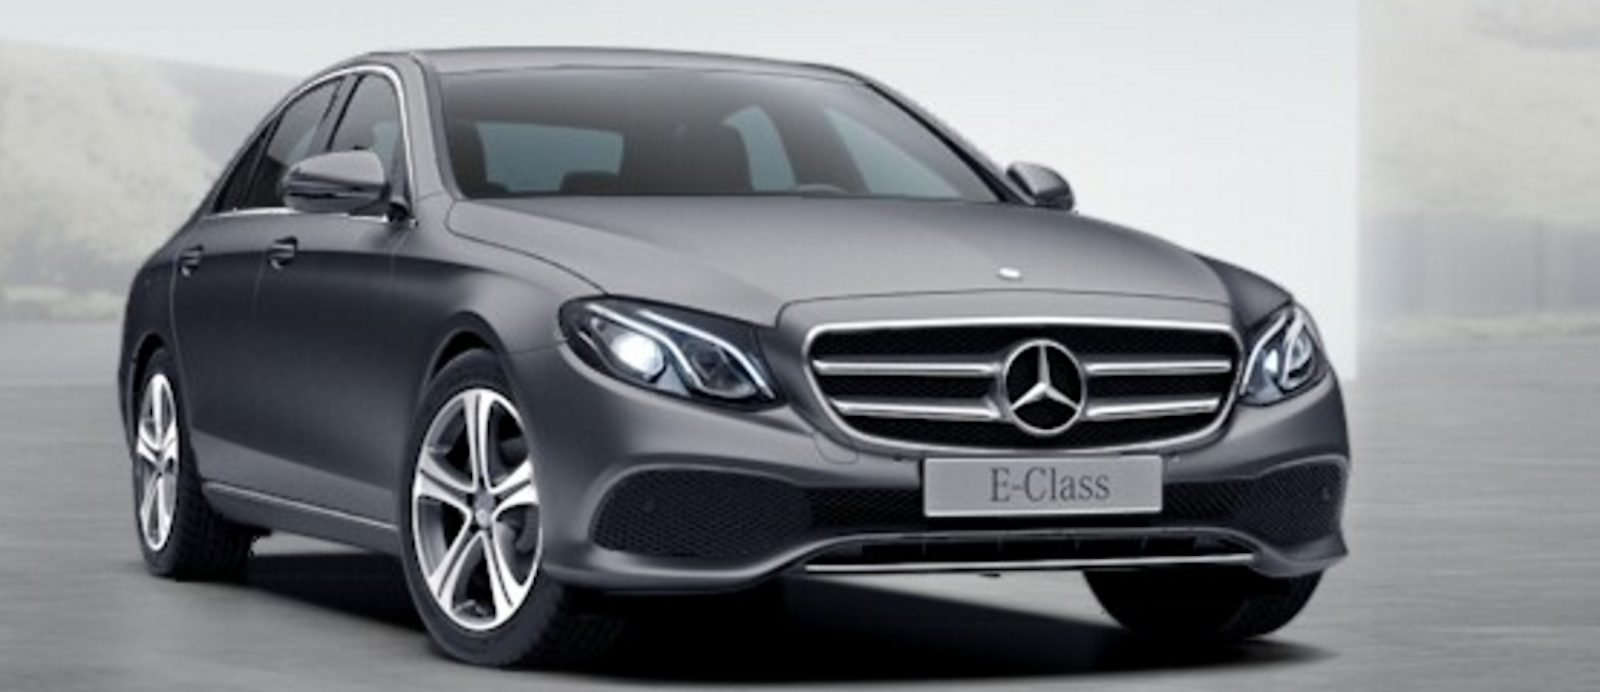 What Does The E Stand For In E Class Mercedes